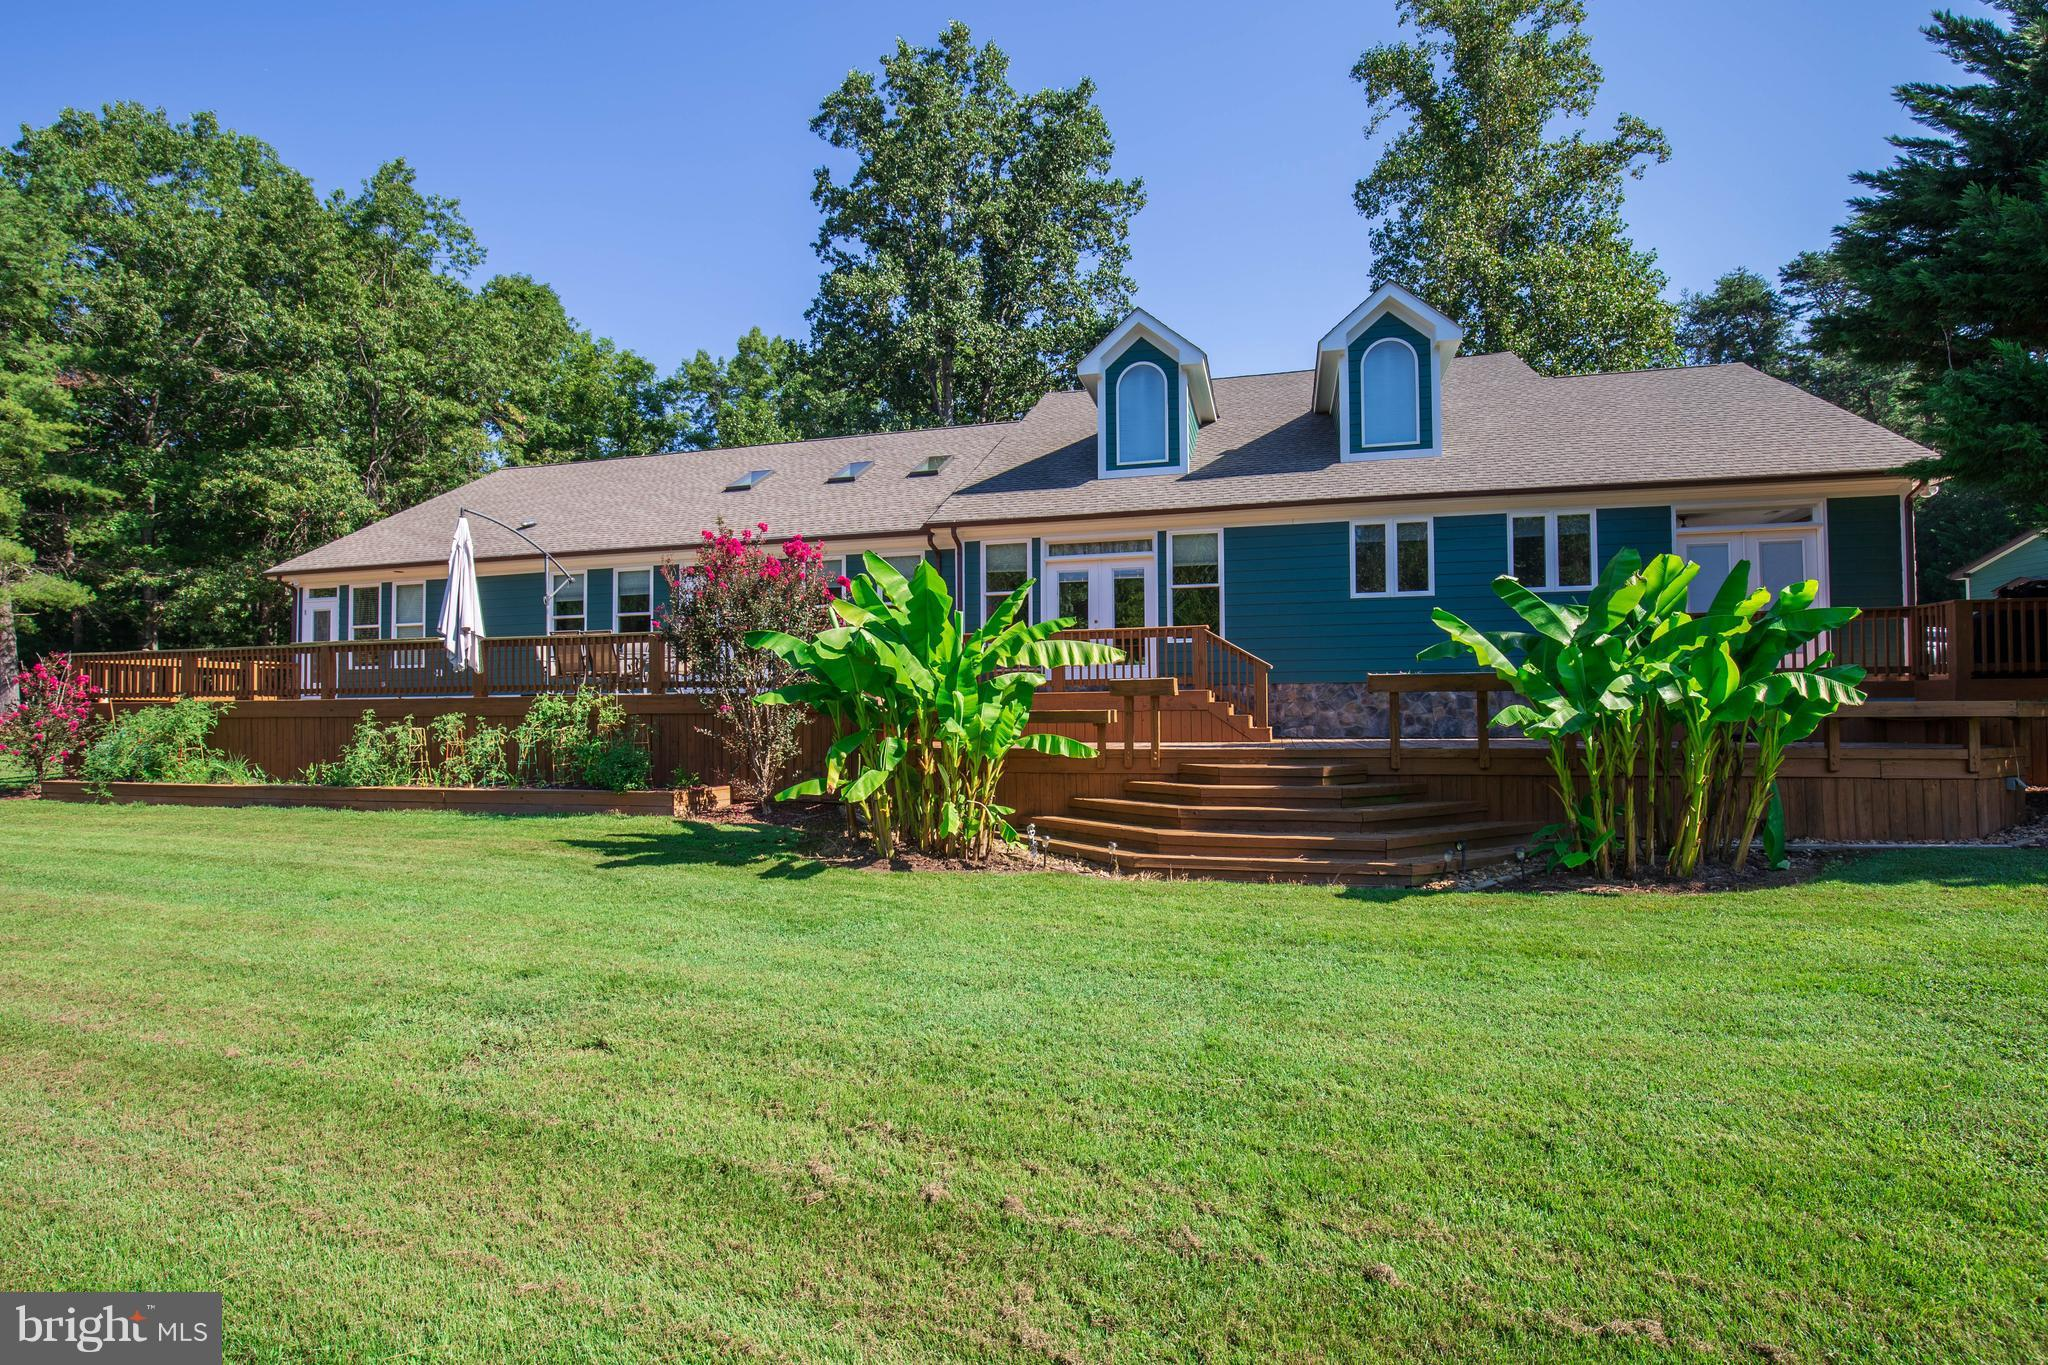 295 SUNCREST DRIVE, SCOTTSVILLE, VA 24590